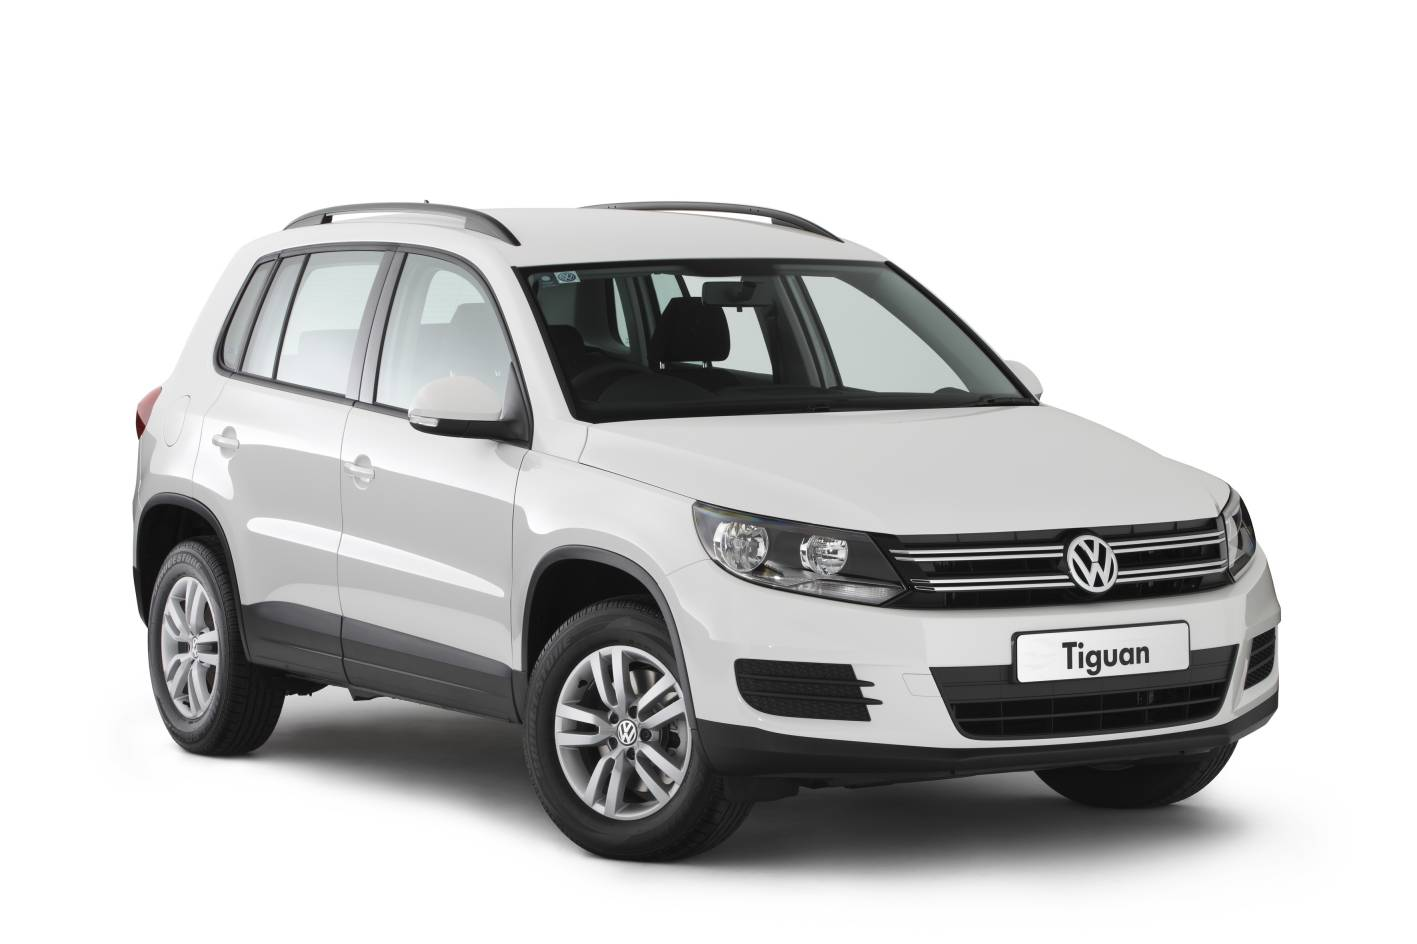 review 2012 volkswagen tiguan 118tsi review and road test. Black Bedroom Furniture Sets. Home Design Ideas